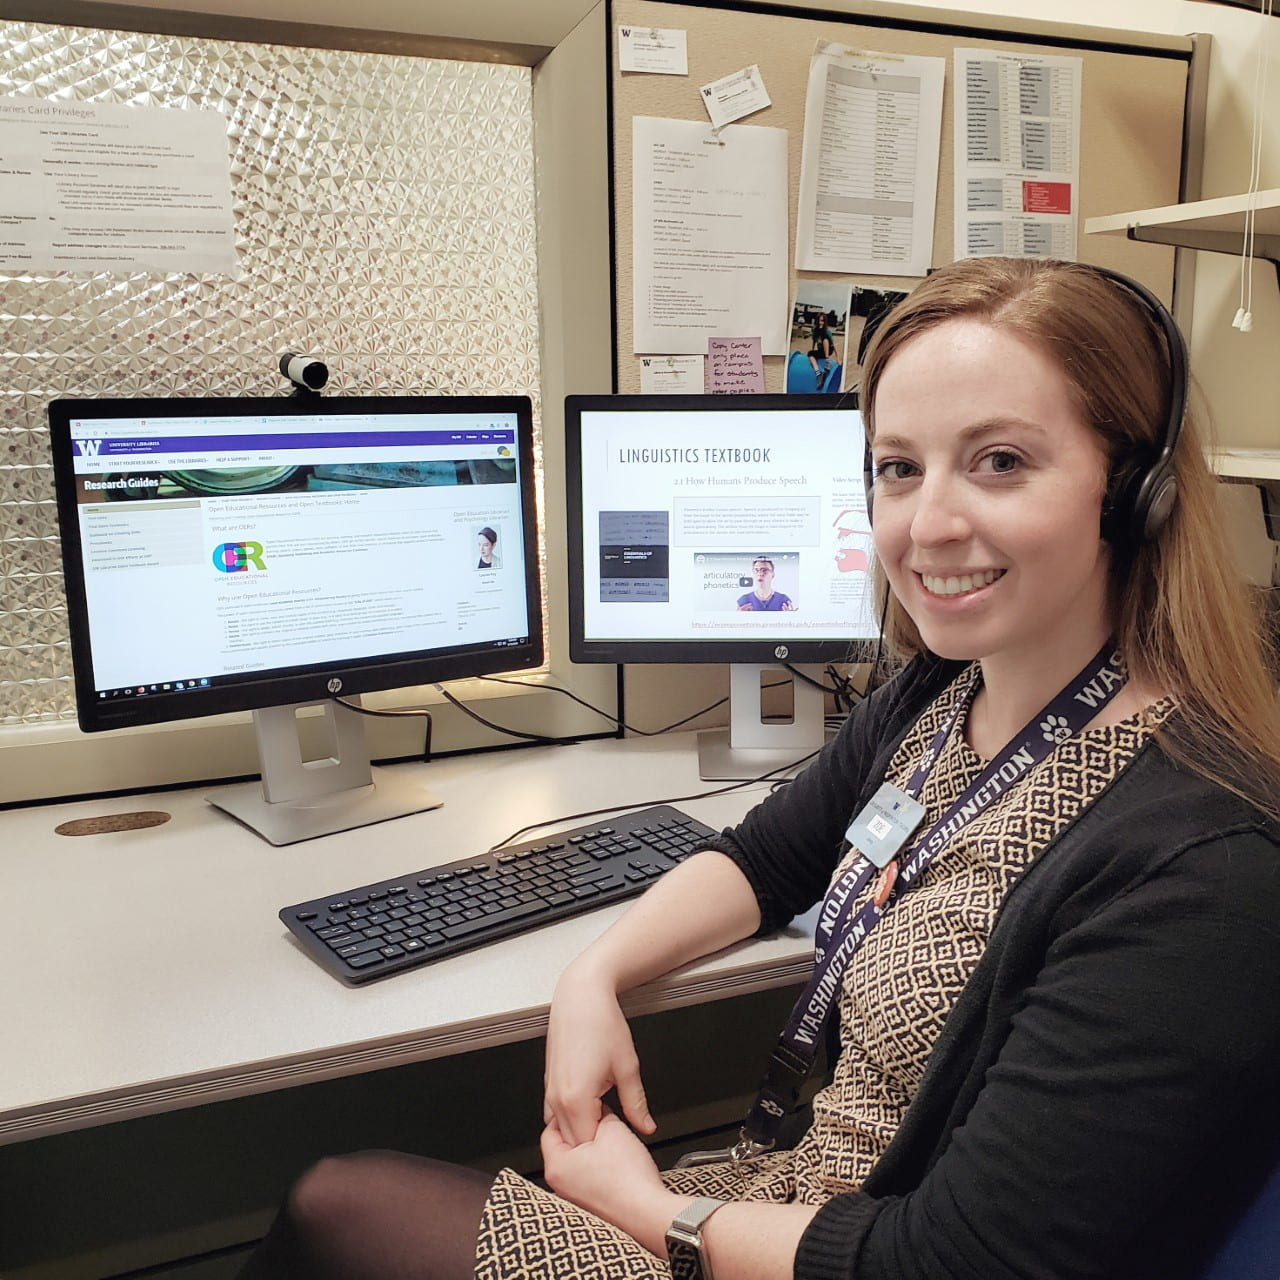 Woman smiling and sitting at her computer, while listening to online presentation about Pressbooks authoring platform.